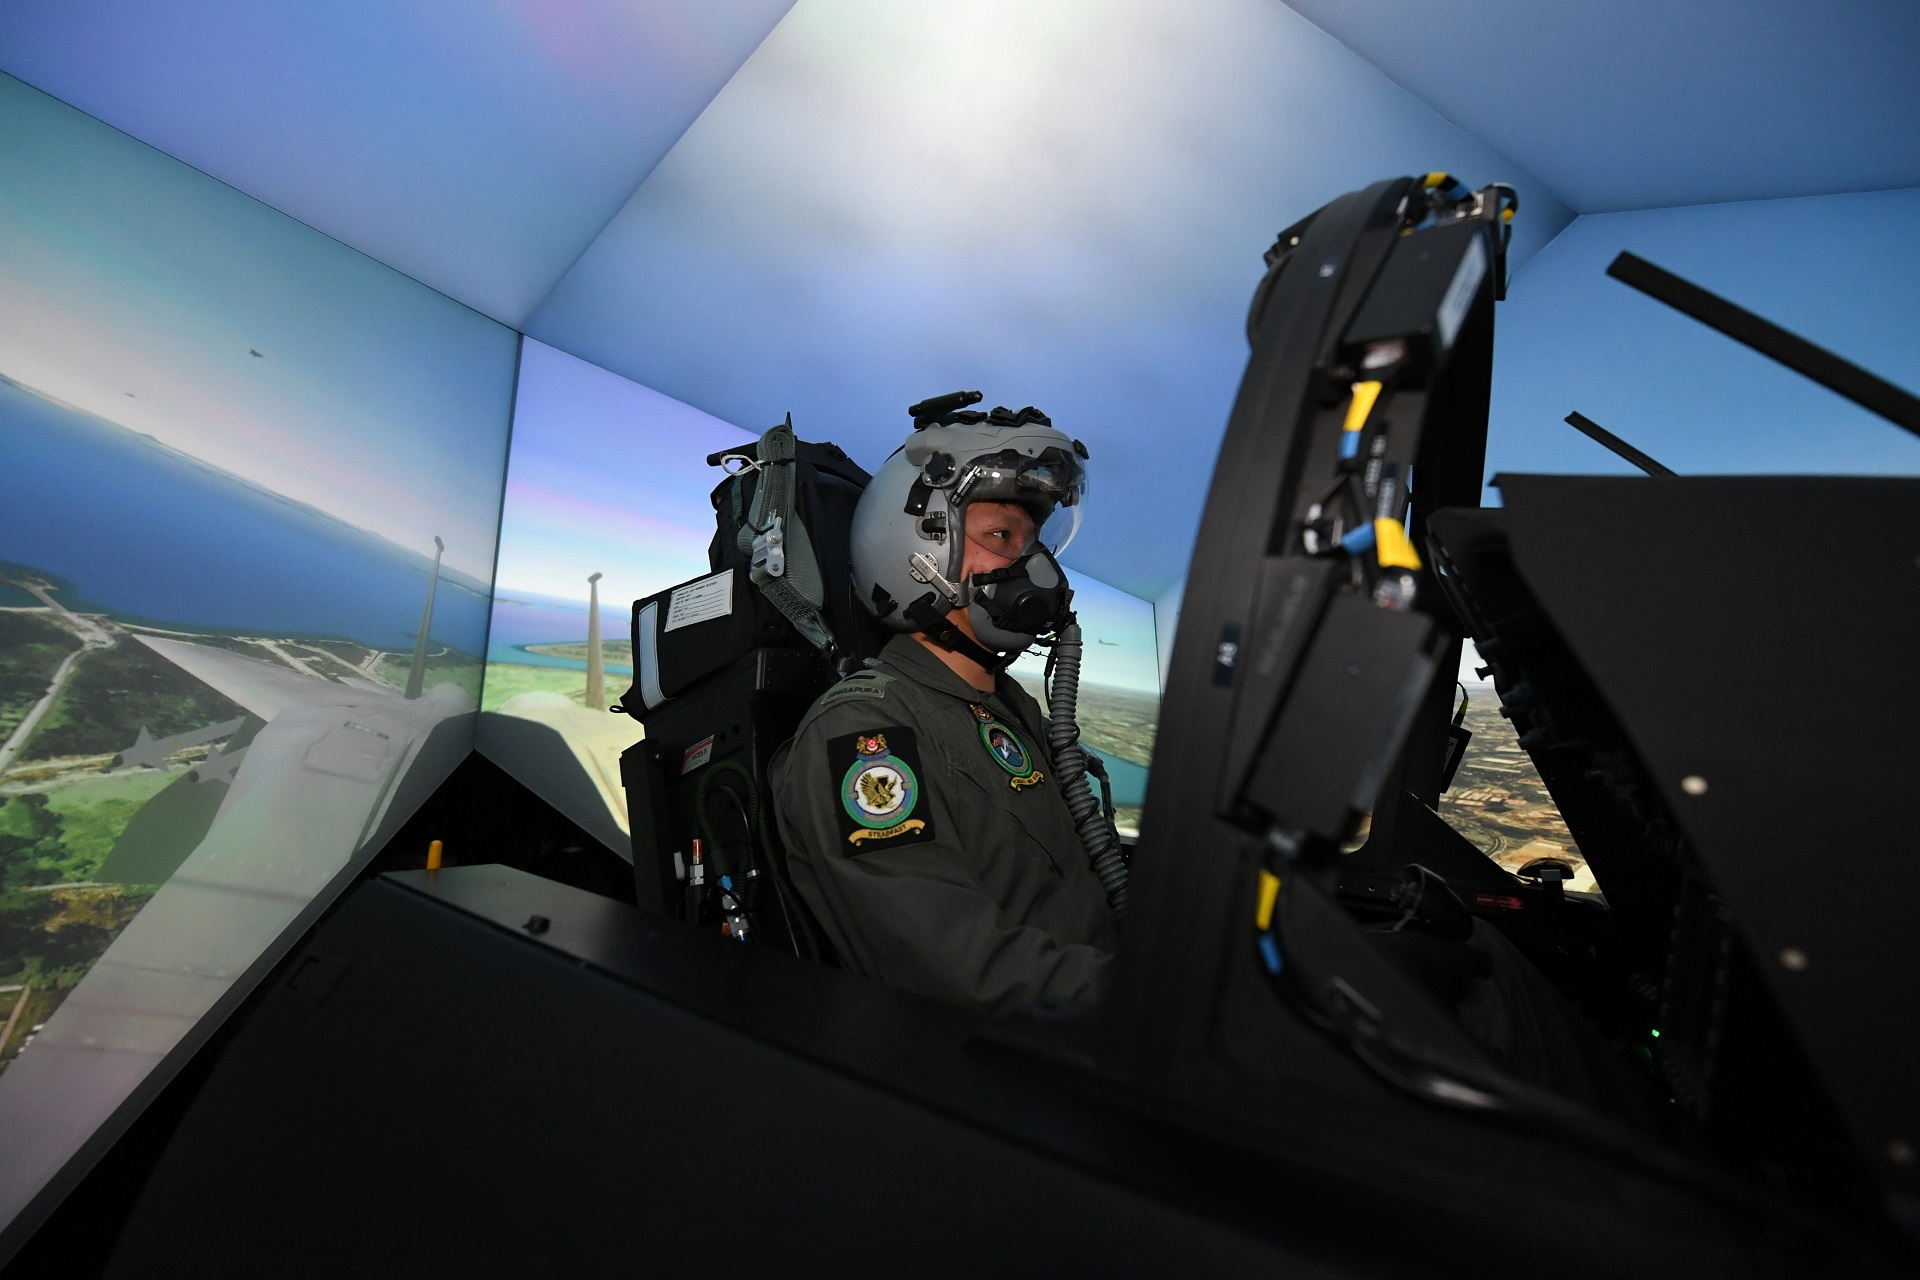 F-15SG training simulator to sharpen aircrew's combat skills